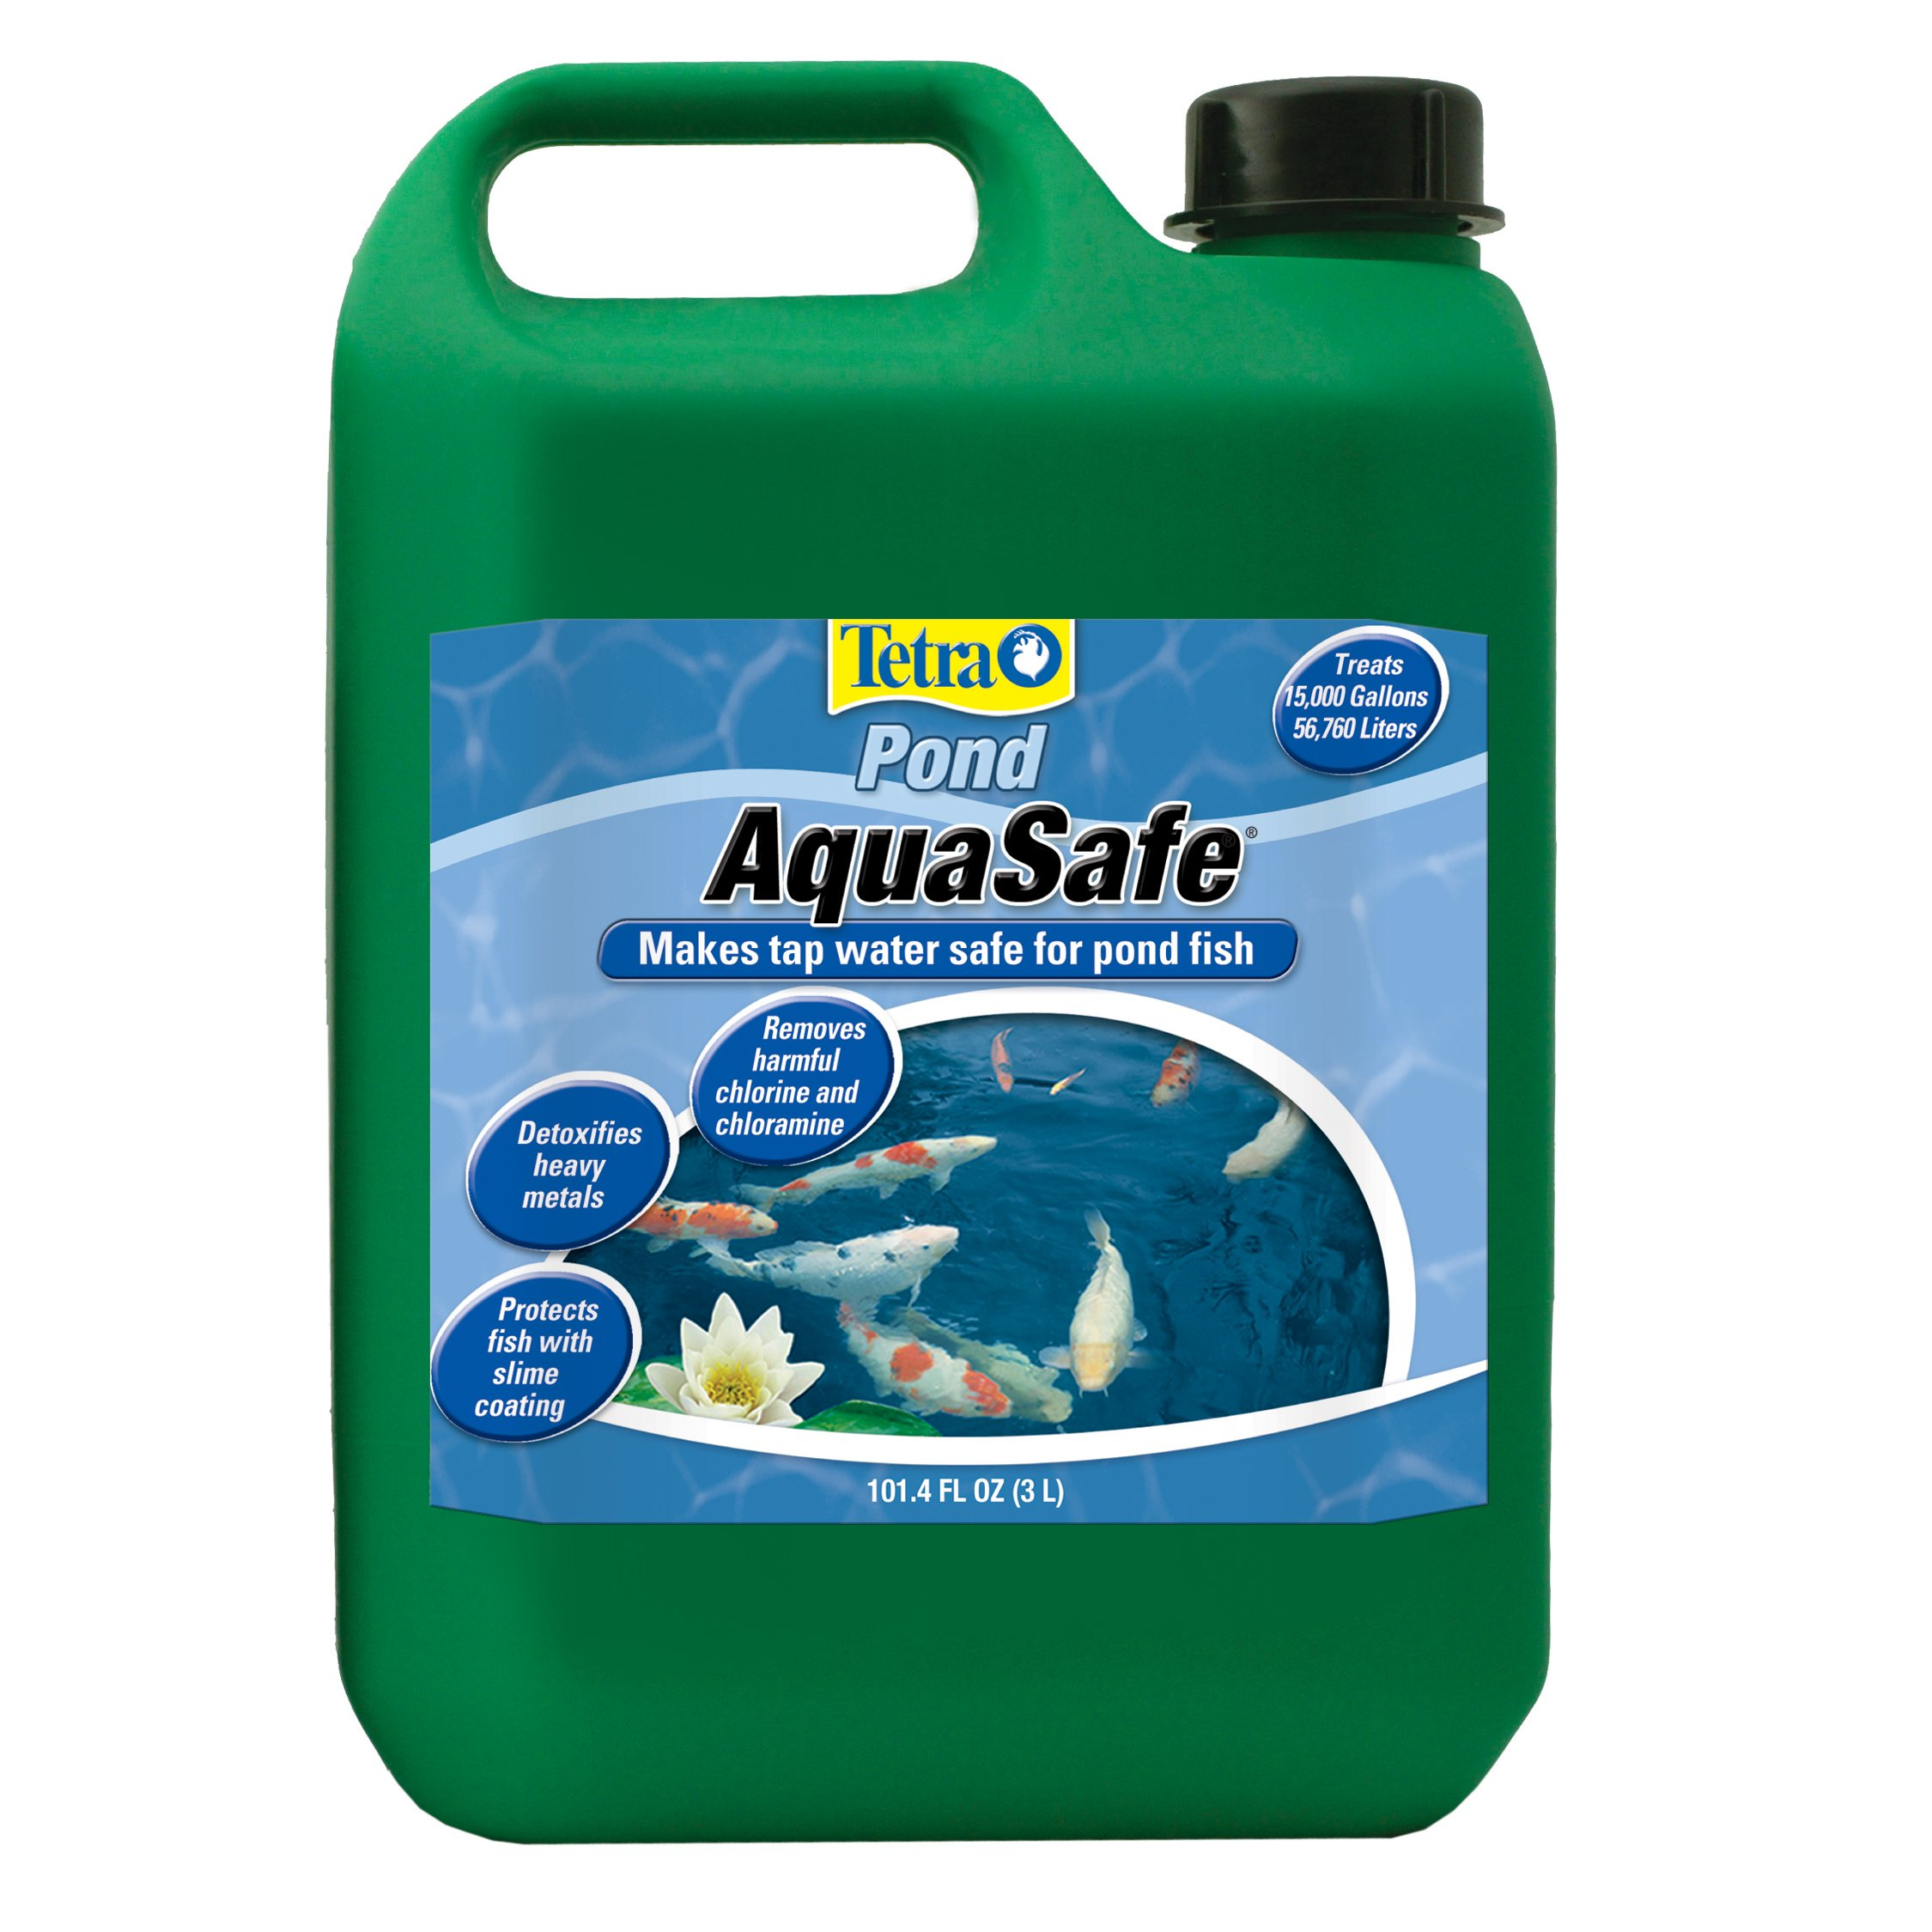 TetraPond AquaSafe Water Conditioner, Makes Tap Water Safe for Ponds by Tetra Pond